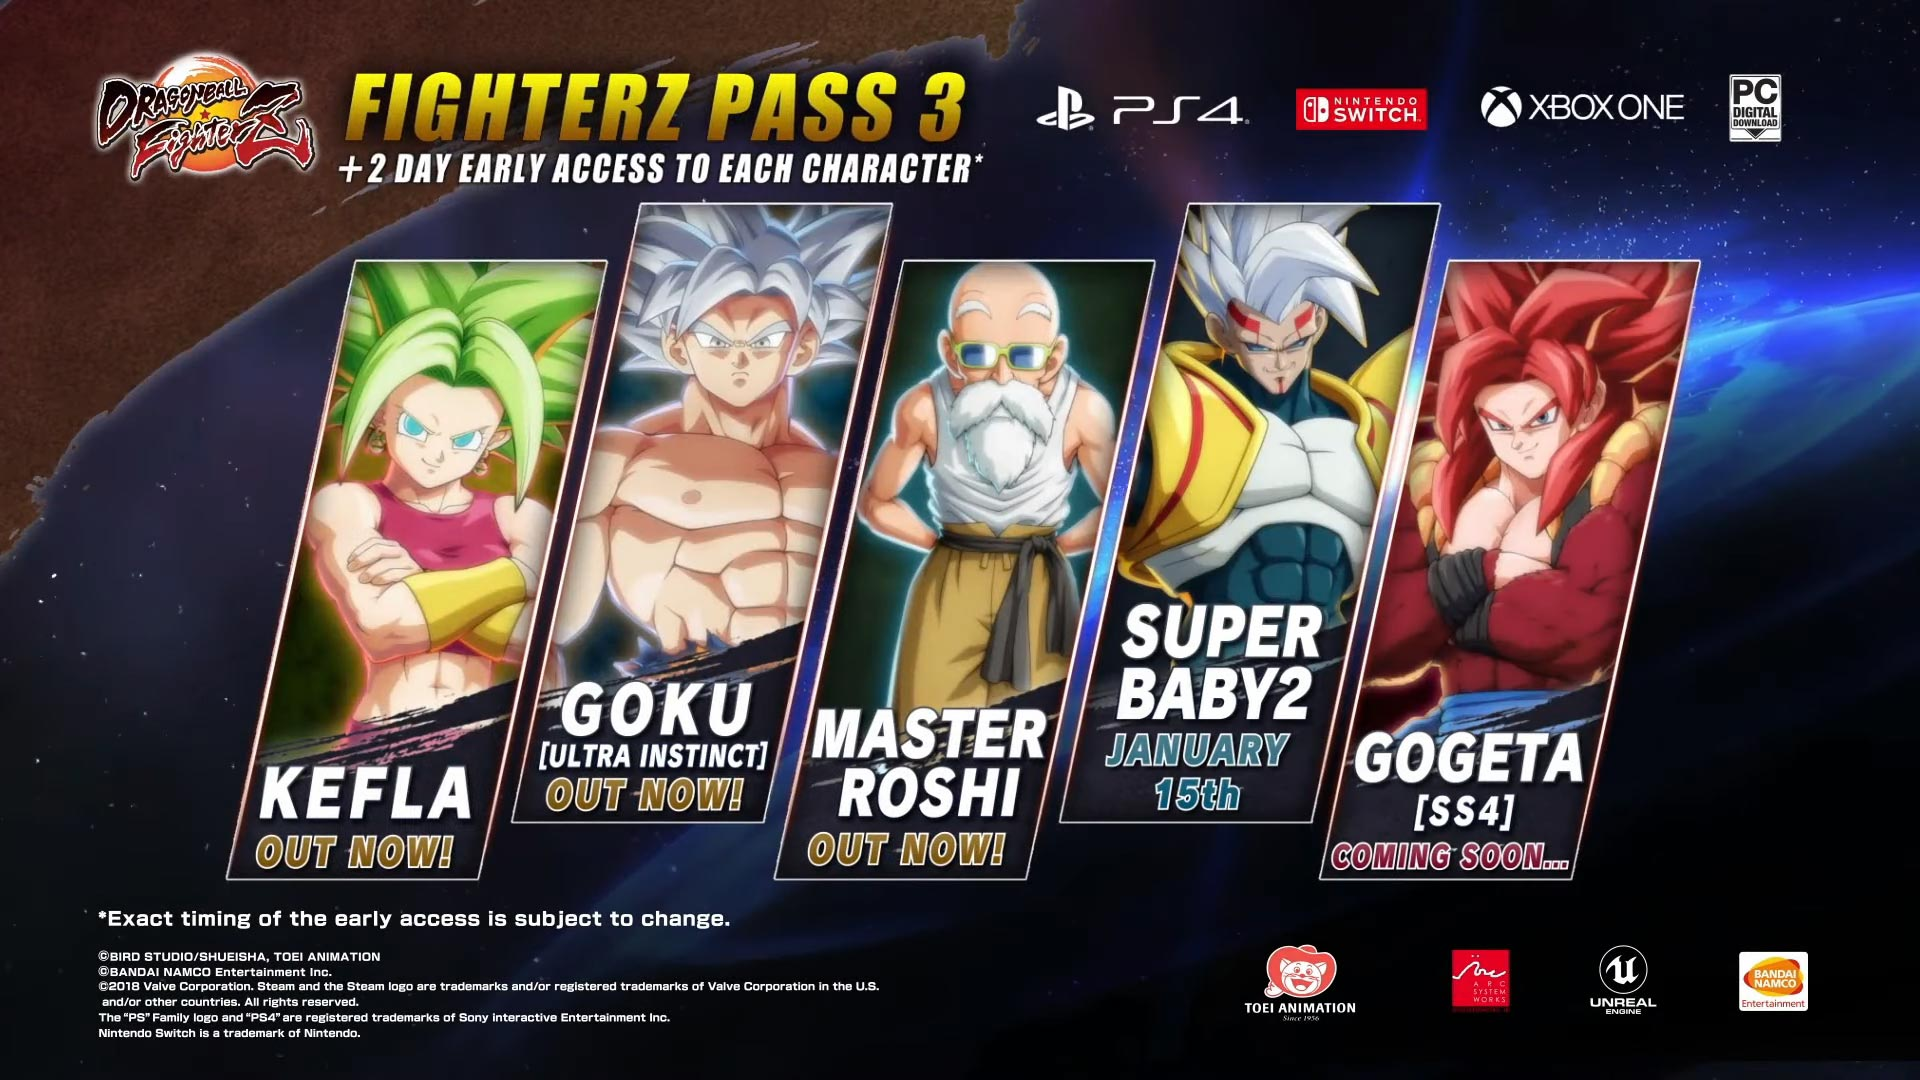 Super Baby 2 Trailer and Super Saiyan 4 Gogeta Reveal Image Gallery 9 out of 9 image gallery